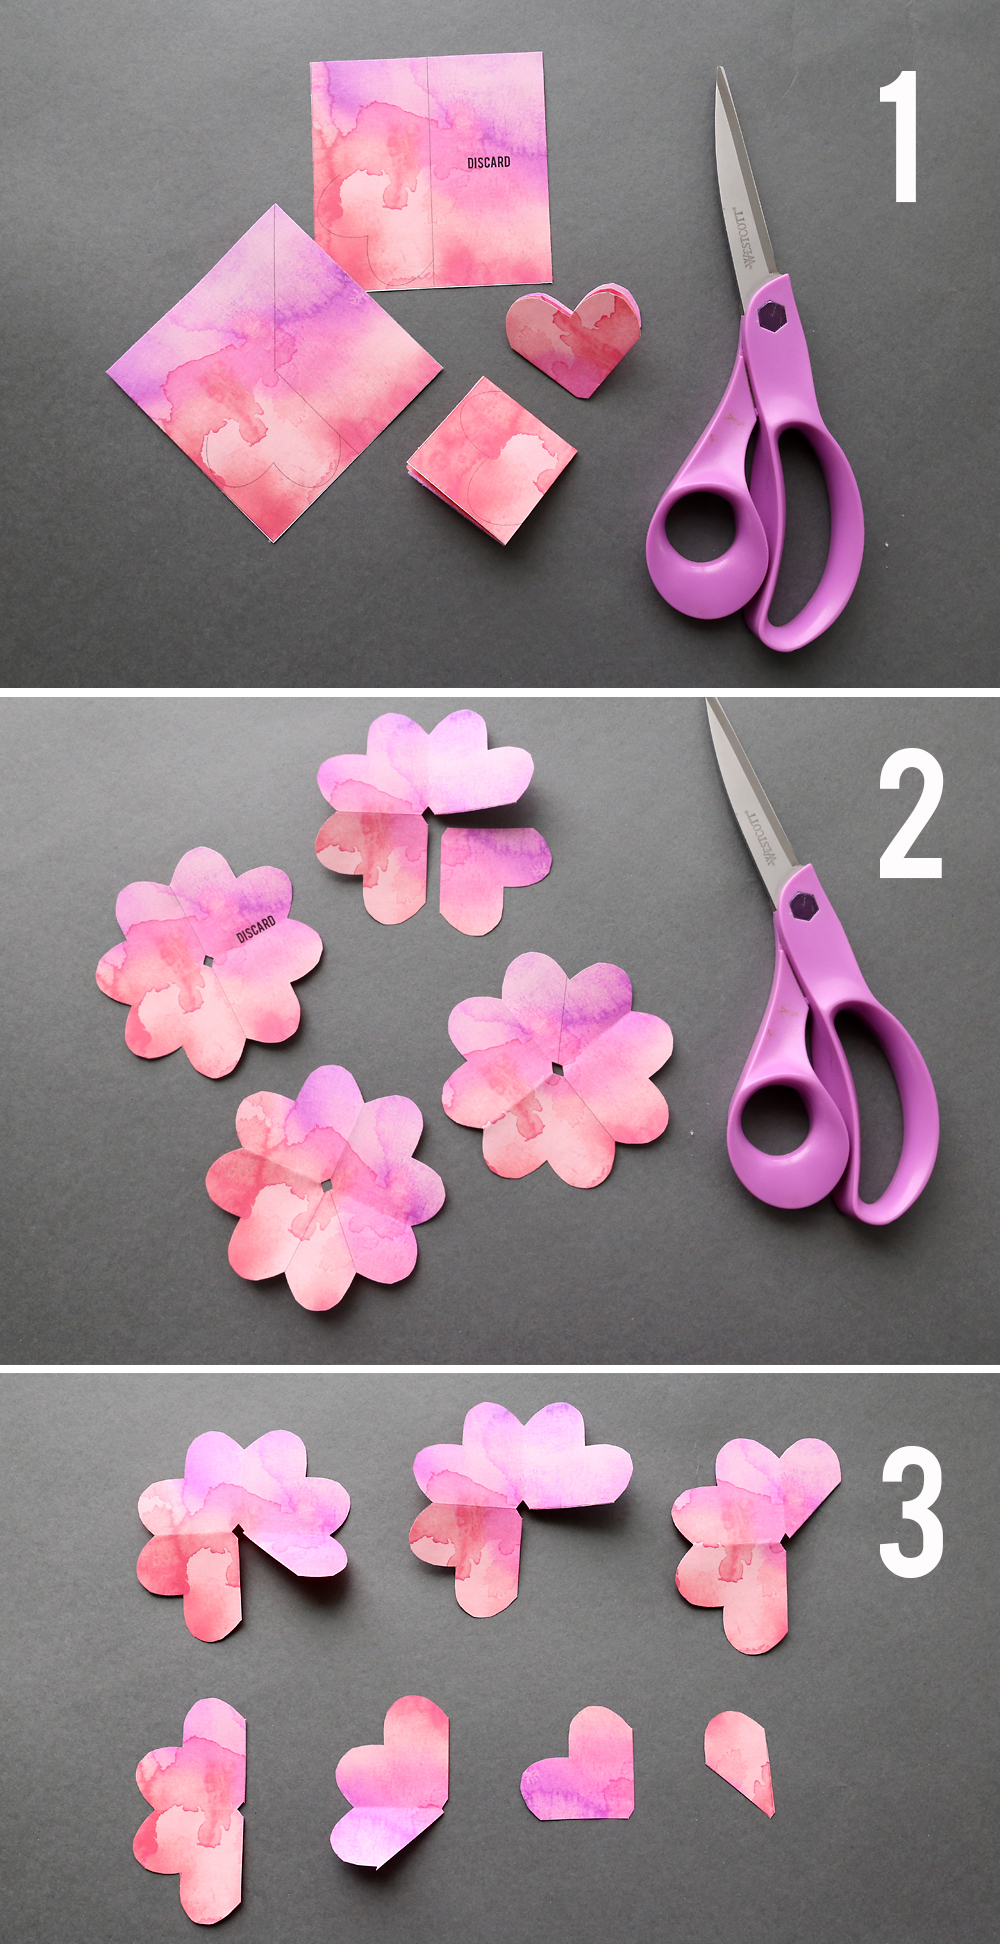 Diy Paper Flower Tutorial Step By Step Instructions Flowers Healthy